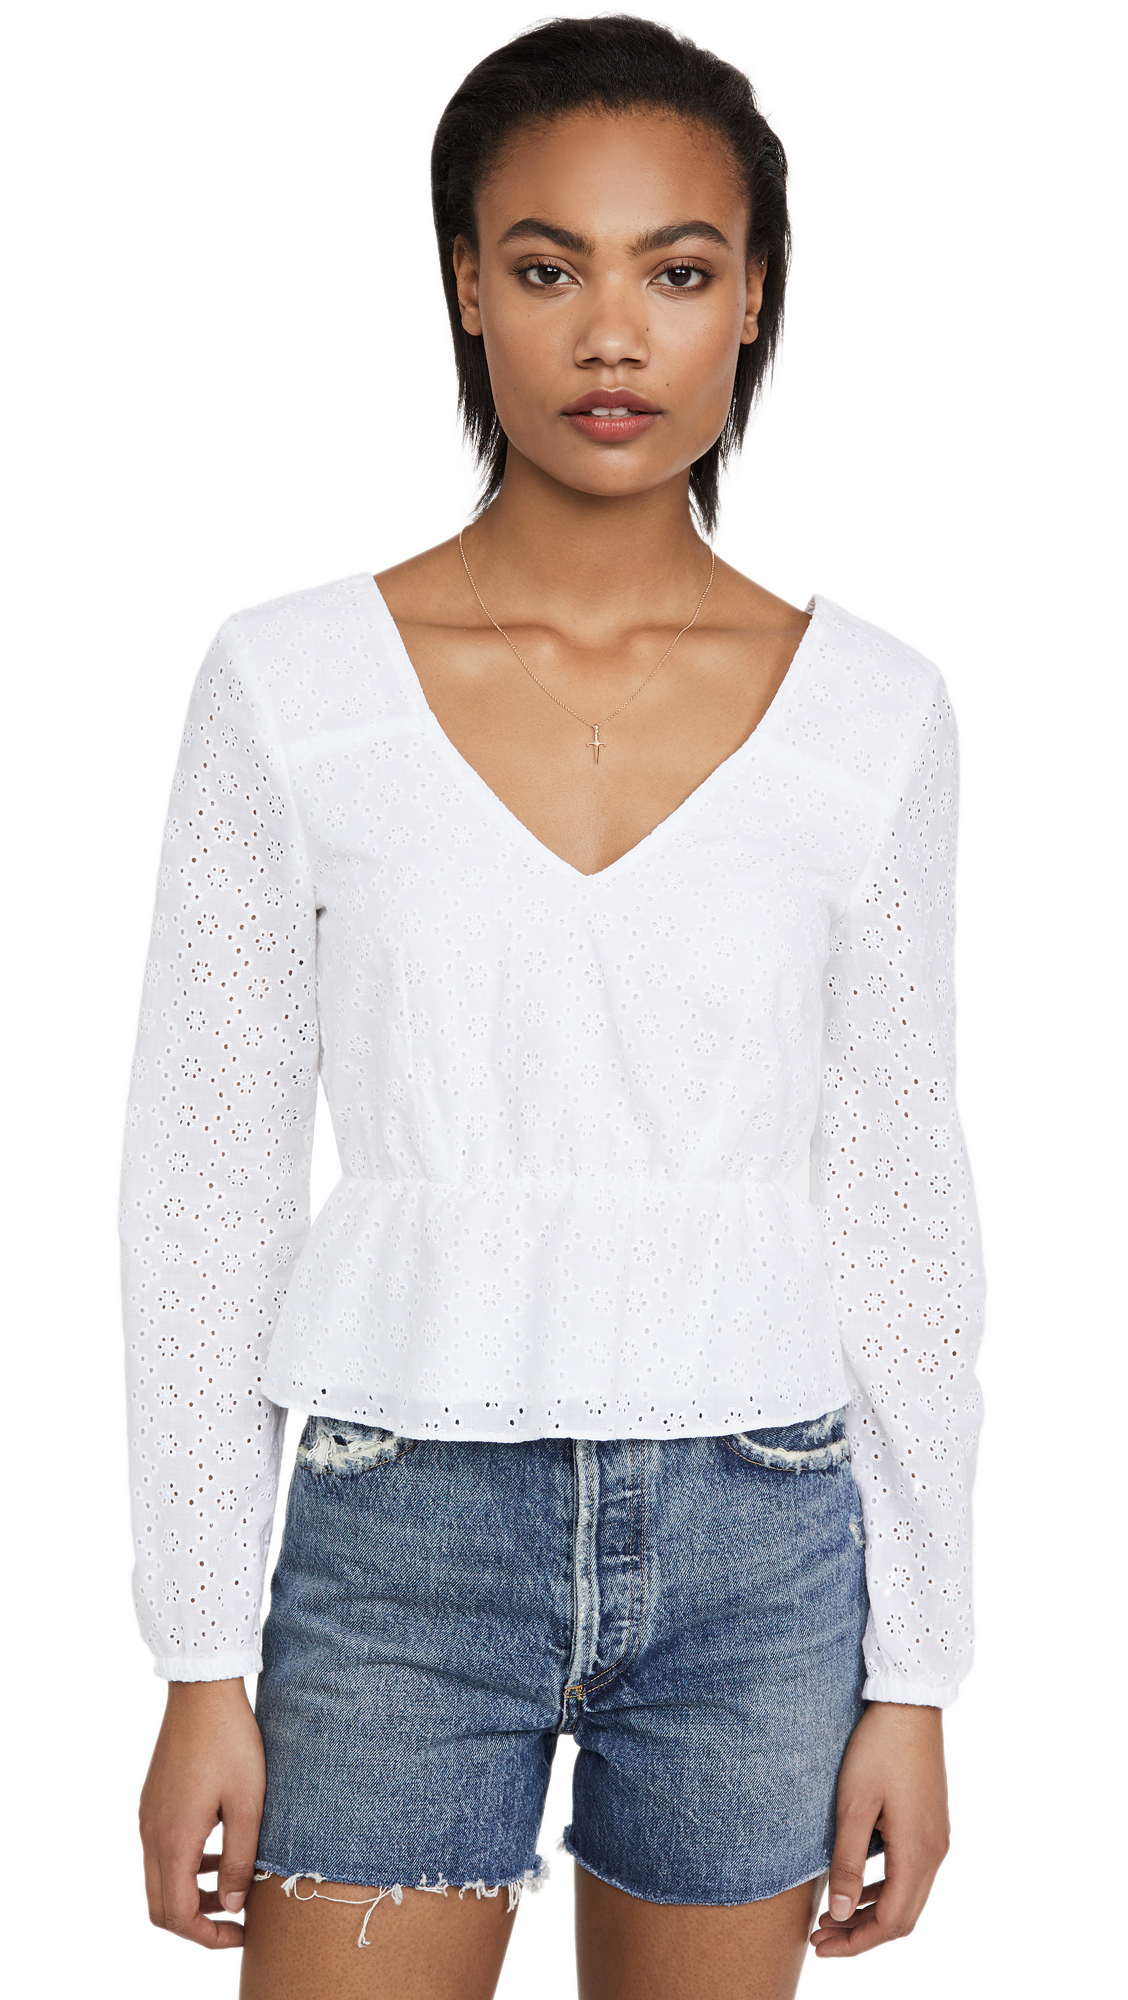 BB Dakota Jack By BB Dakota All Eyelets On You Top - 30% Off Sale